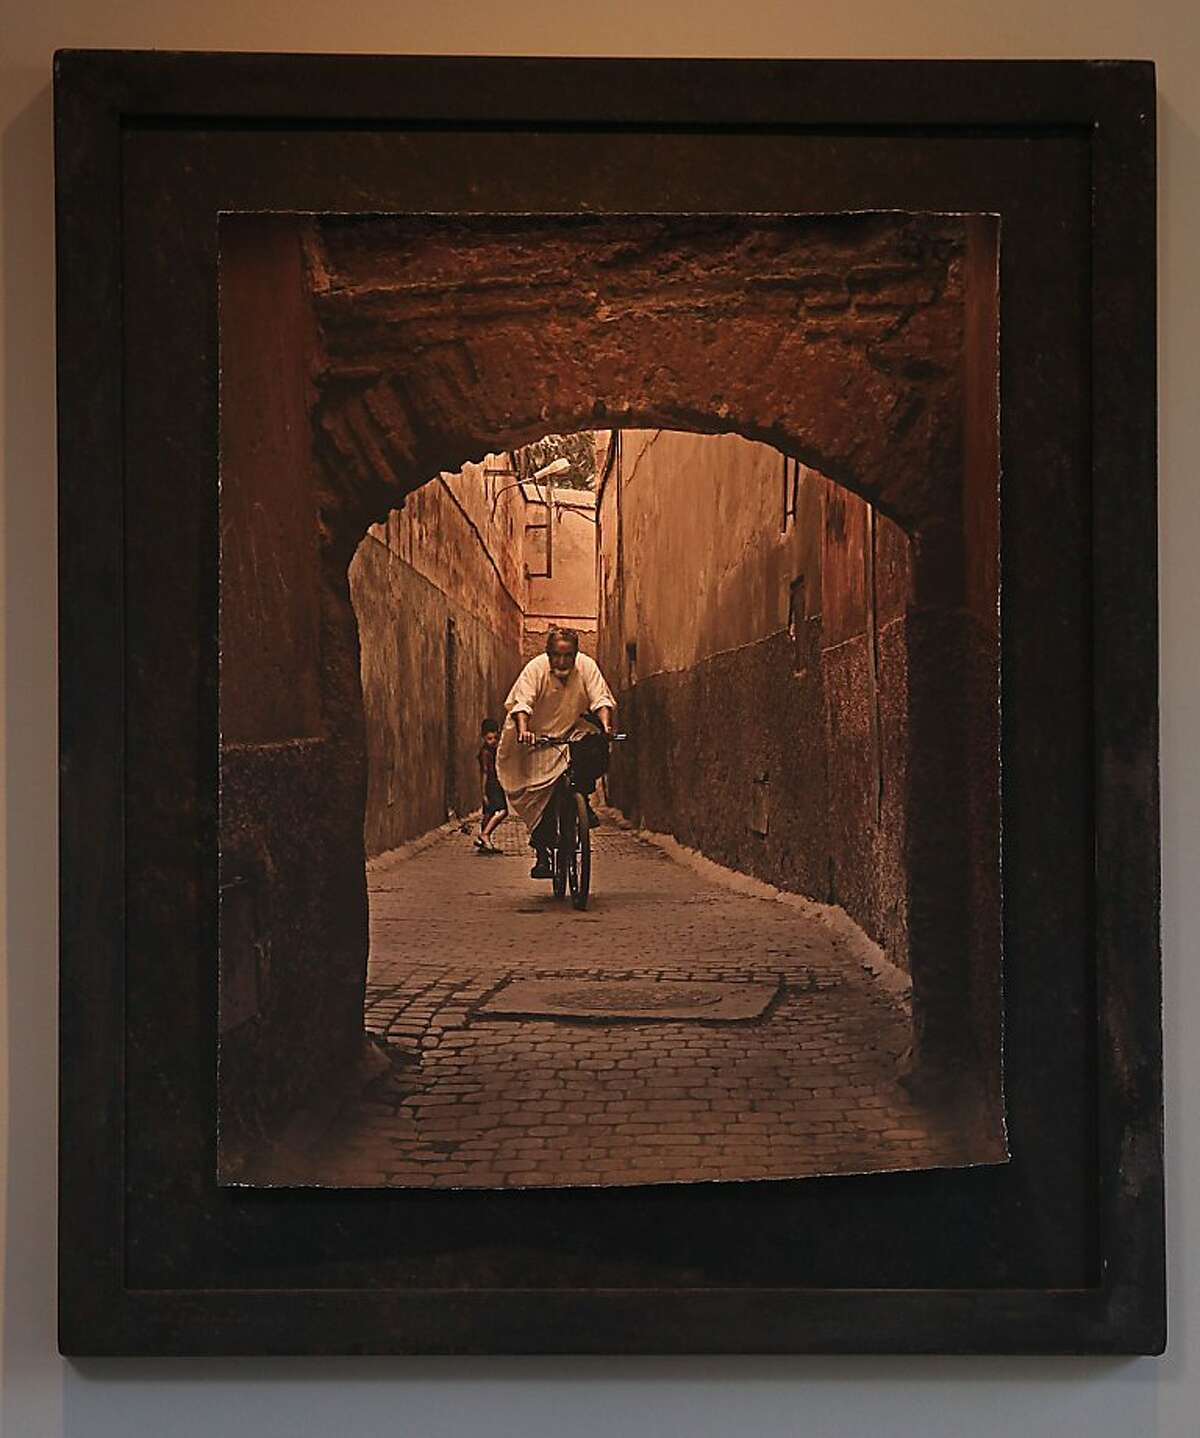 Photo of man on bicycle